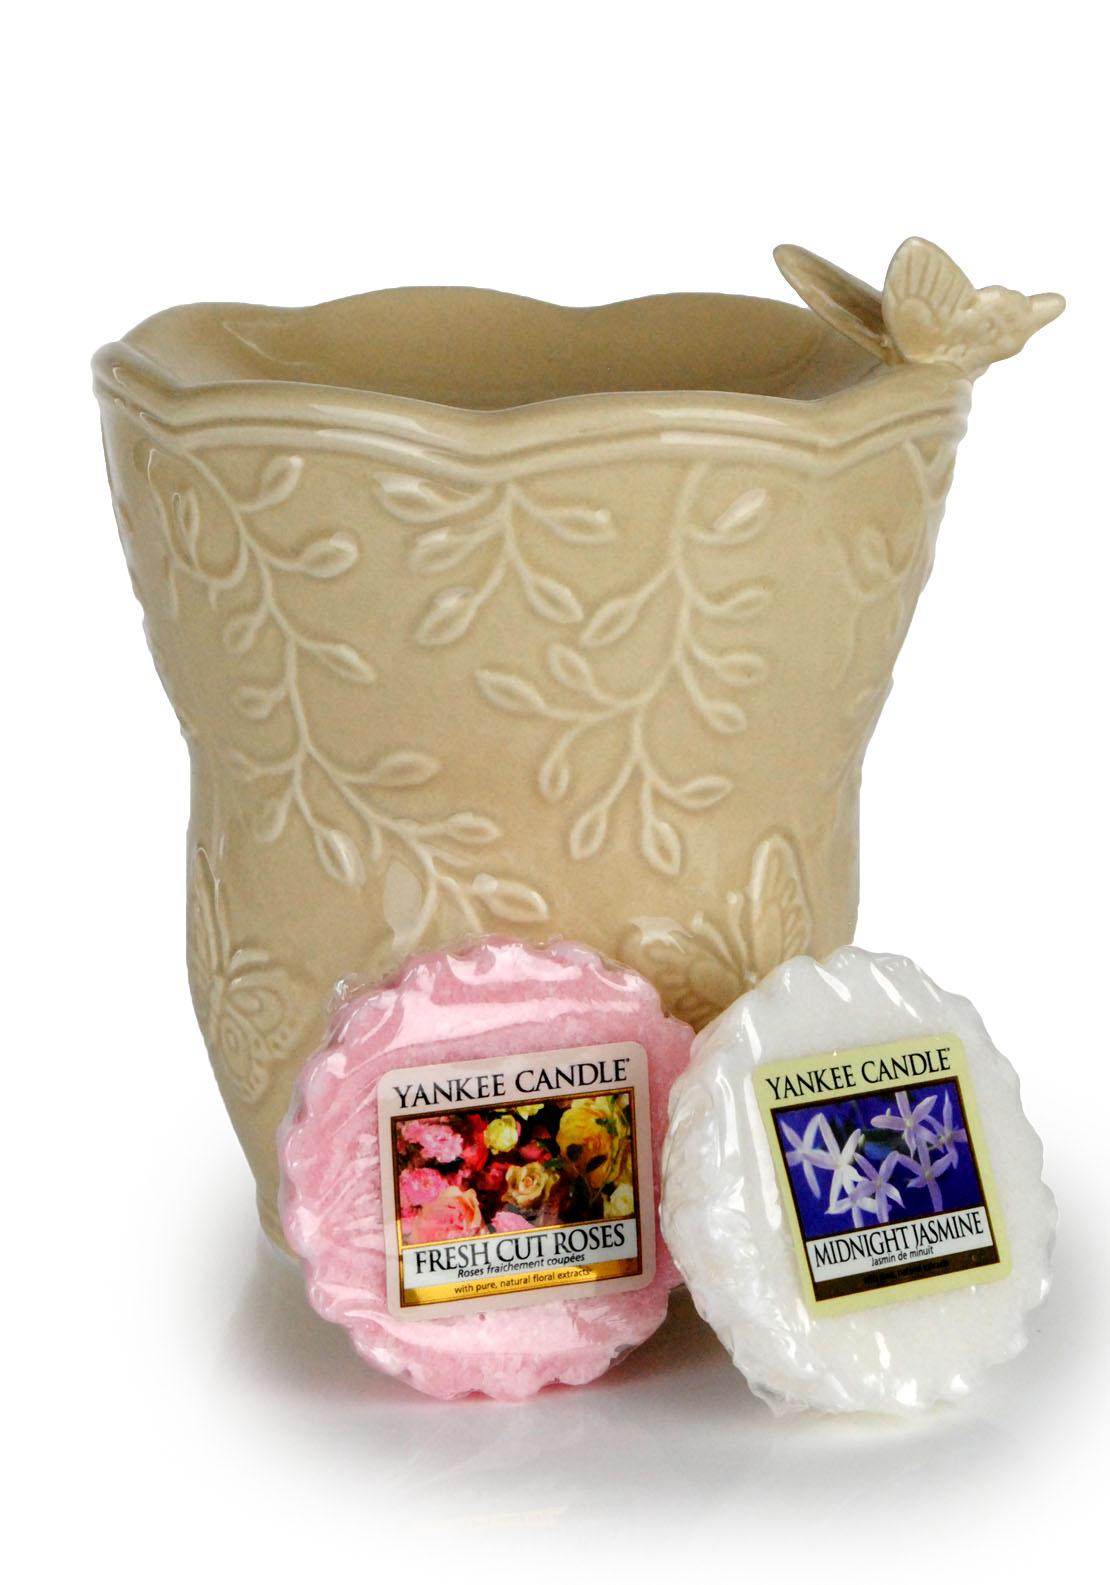 Yankee Candle Tart Warmer Gift Set